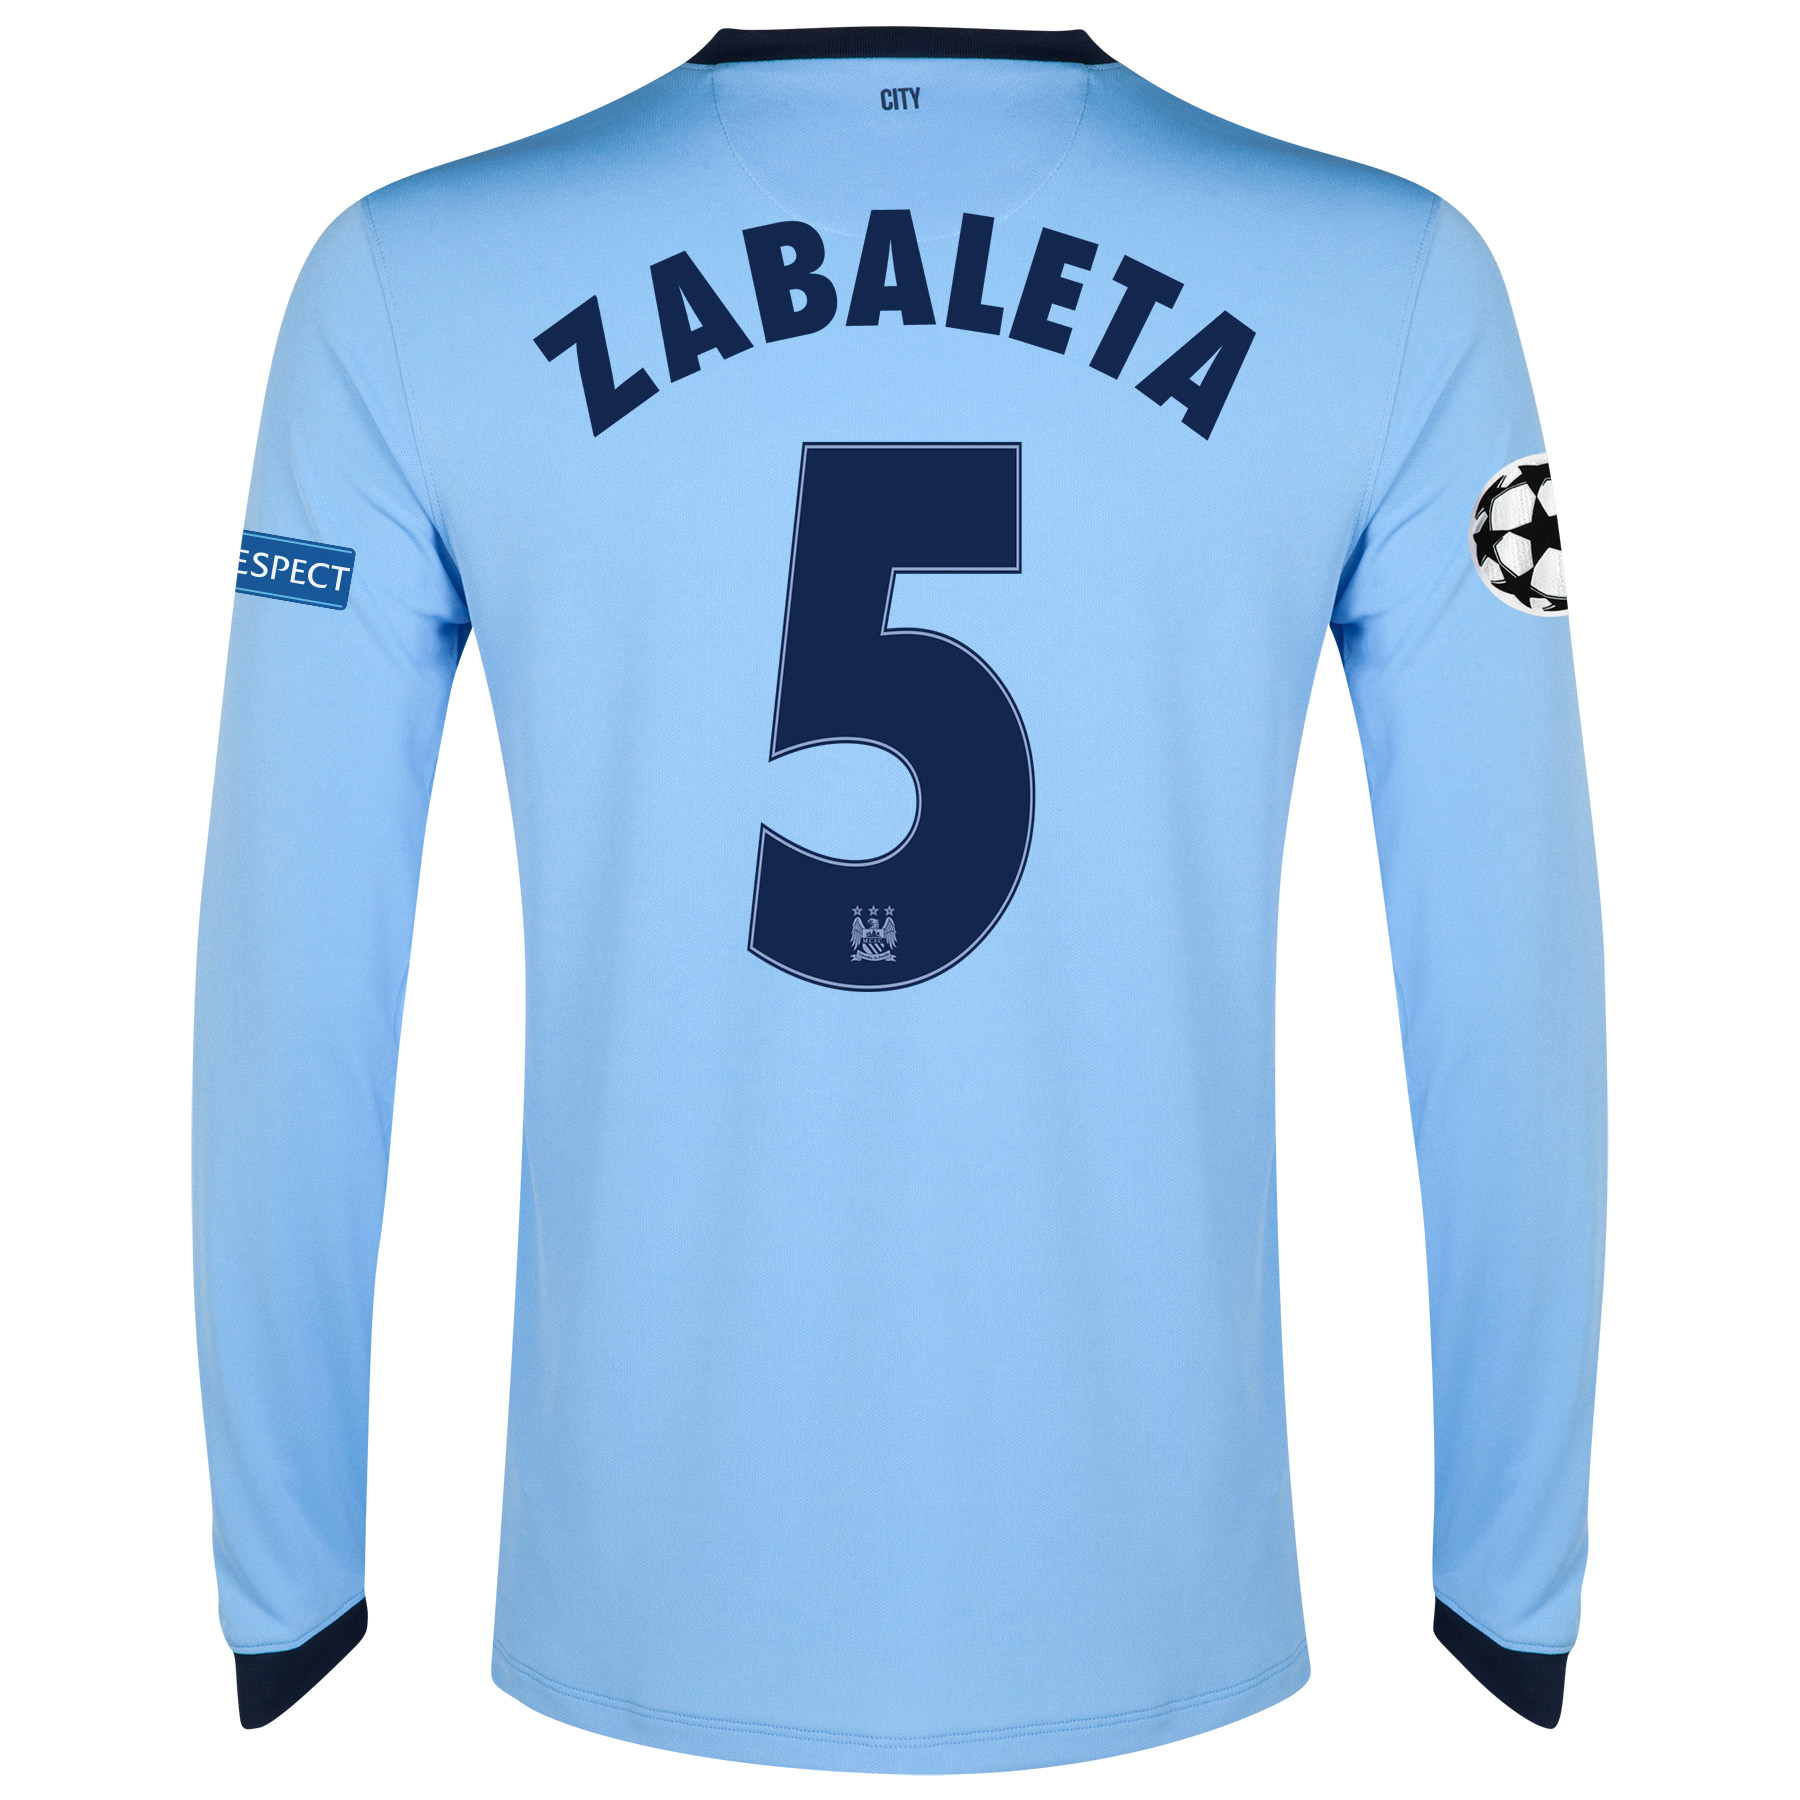 Manchester City UEFA Champions League Home Shirt 2014/15 - Long Sleeve - Kids Sky Blue with Zabaleta 5 printing